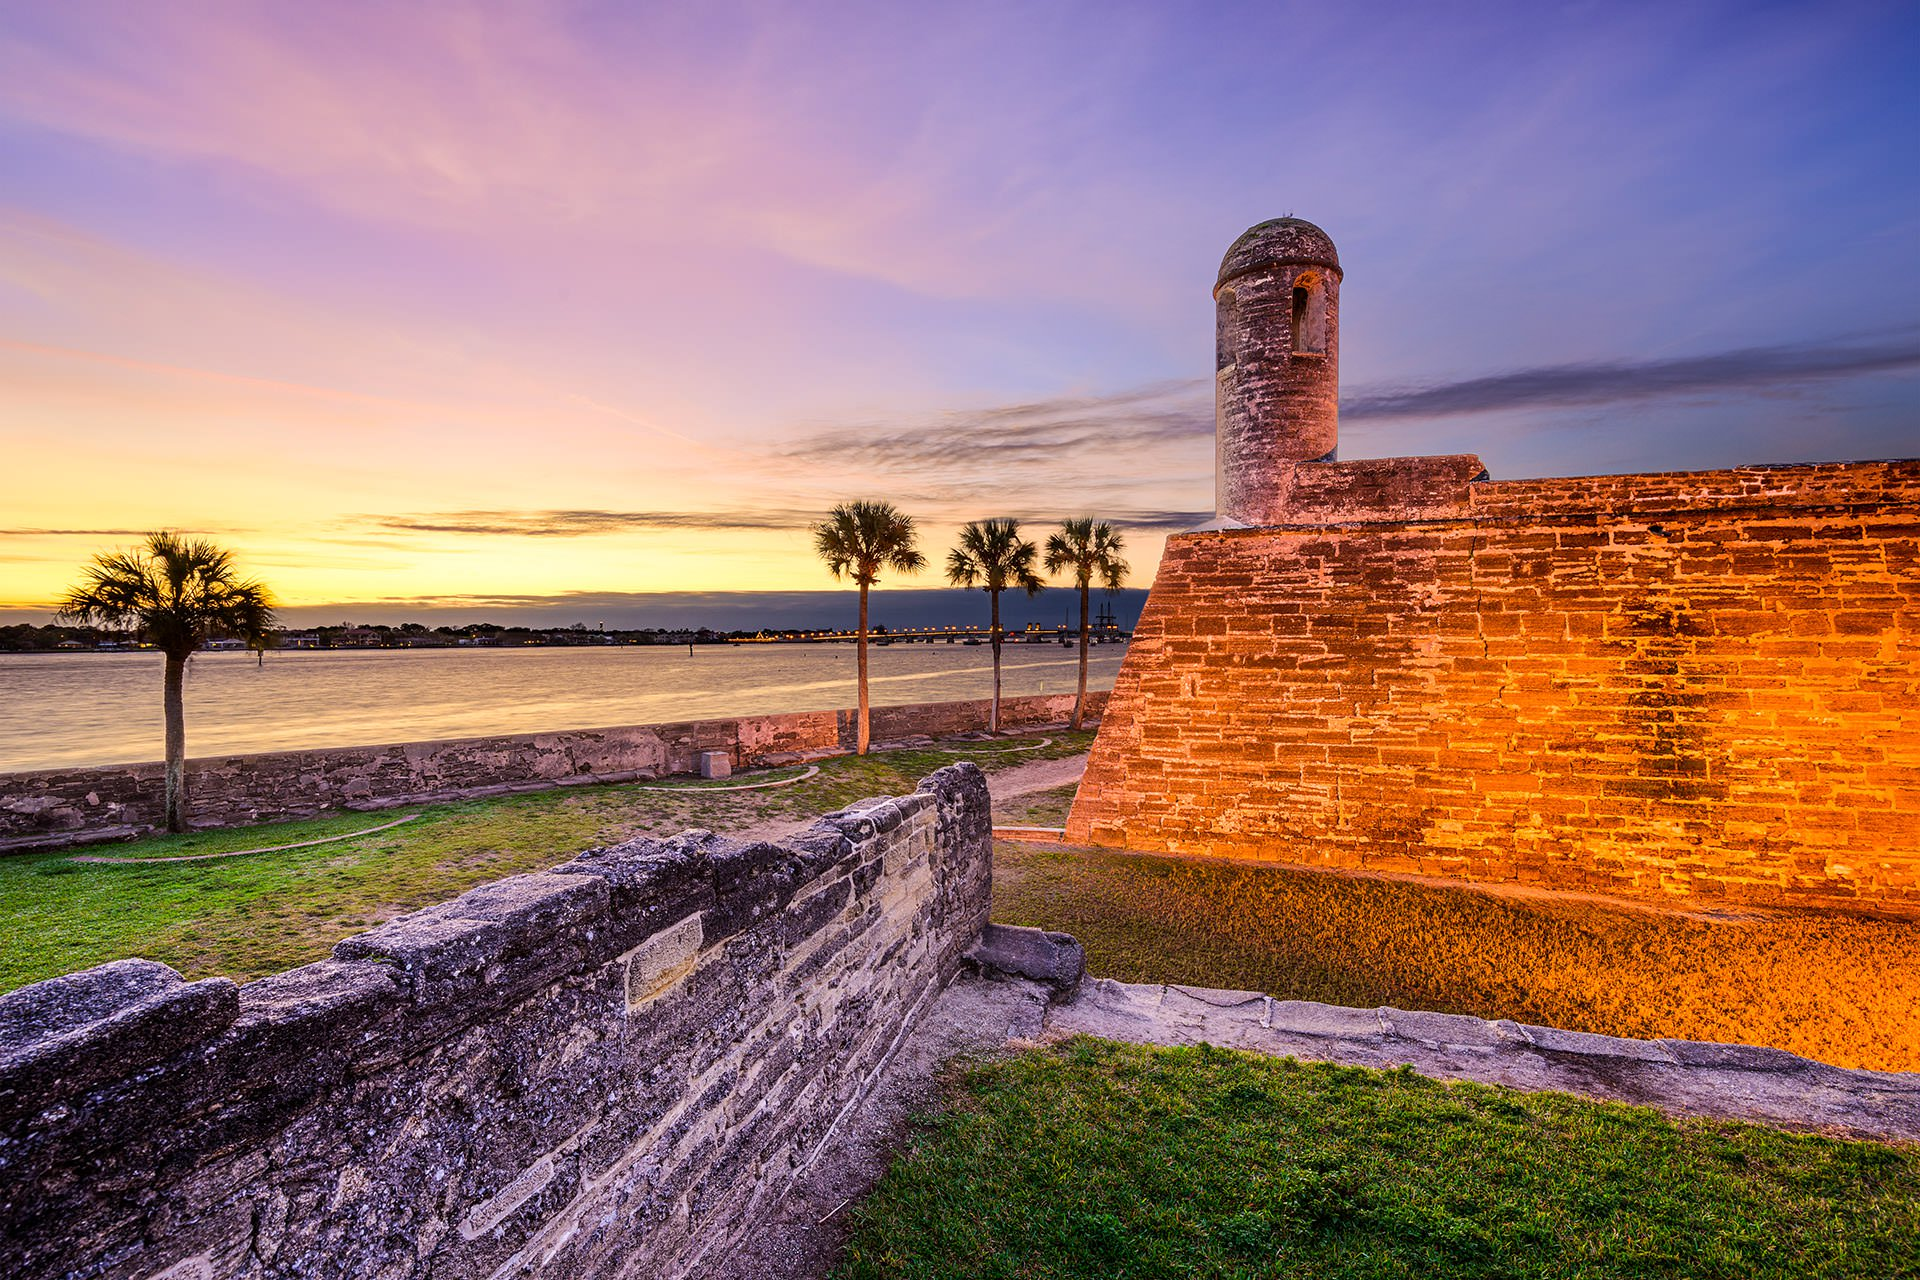 Image of the outside of the Castillo de San Marcos National Monument's eastern wall at sunset, showing the St. Augustine harbor.